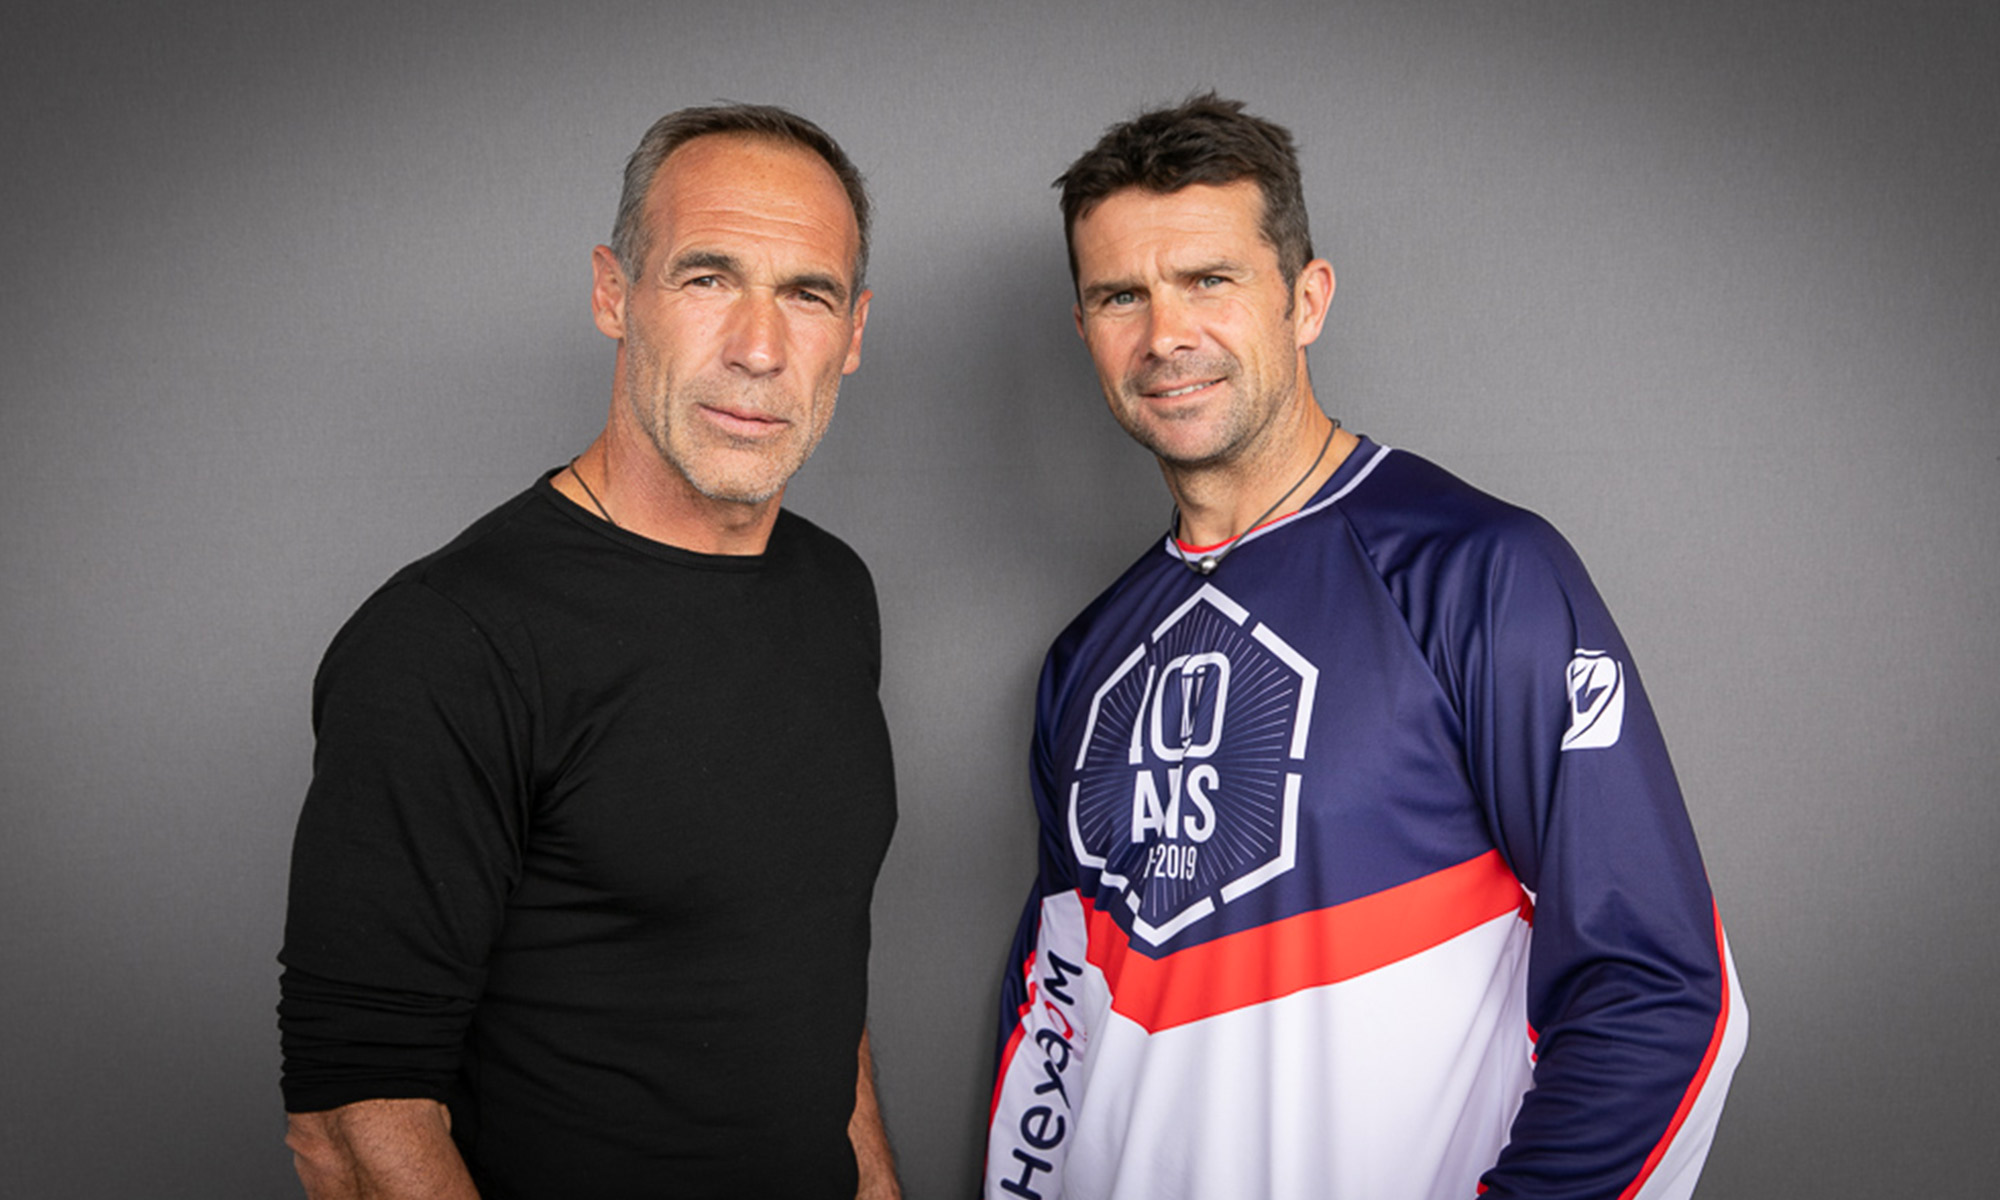 Mike Horn et Cyril Despres